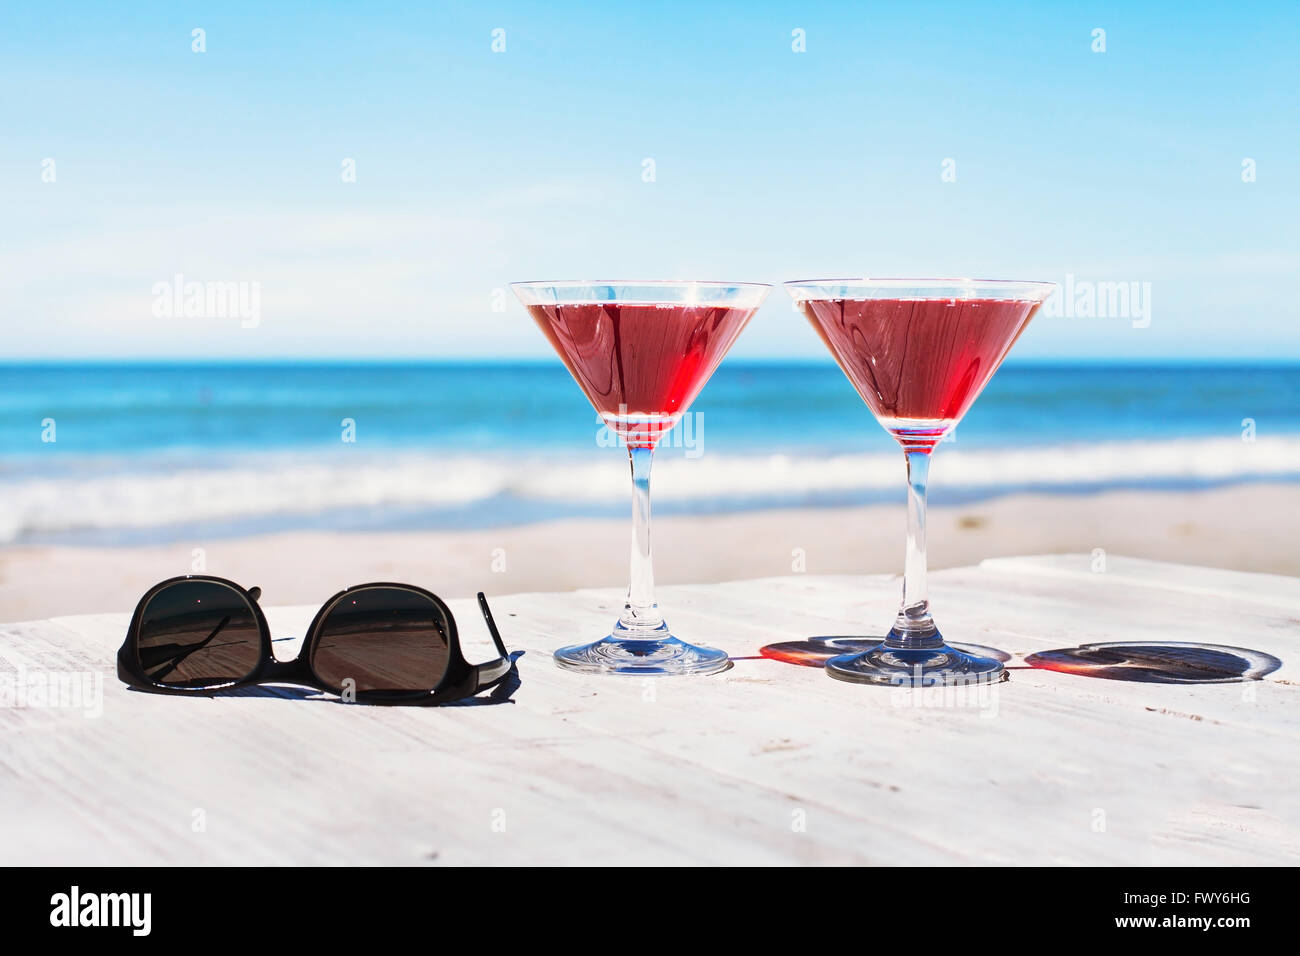 summer holidays concept, two cocktails and sunglasses on the beach table, tropical vacations - Stock Image